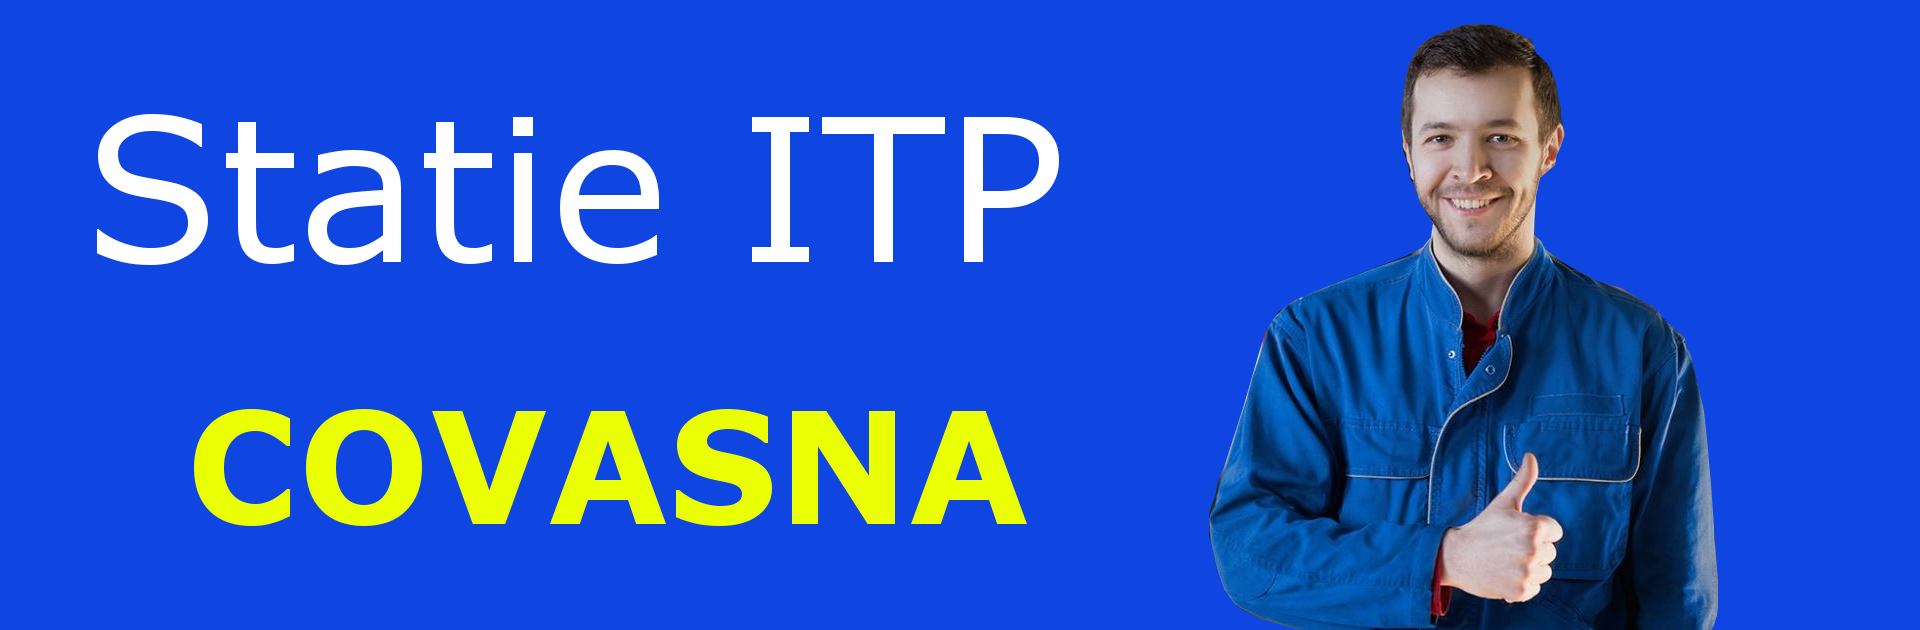 Banner ITP COVASNA